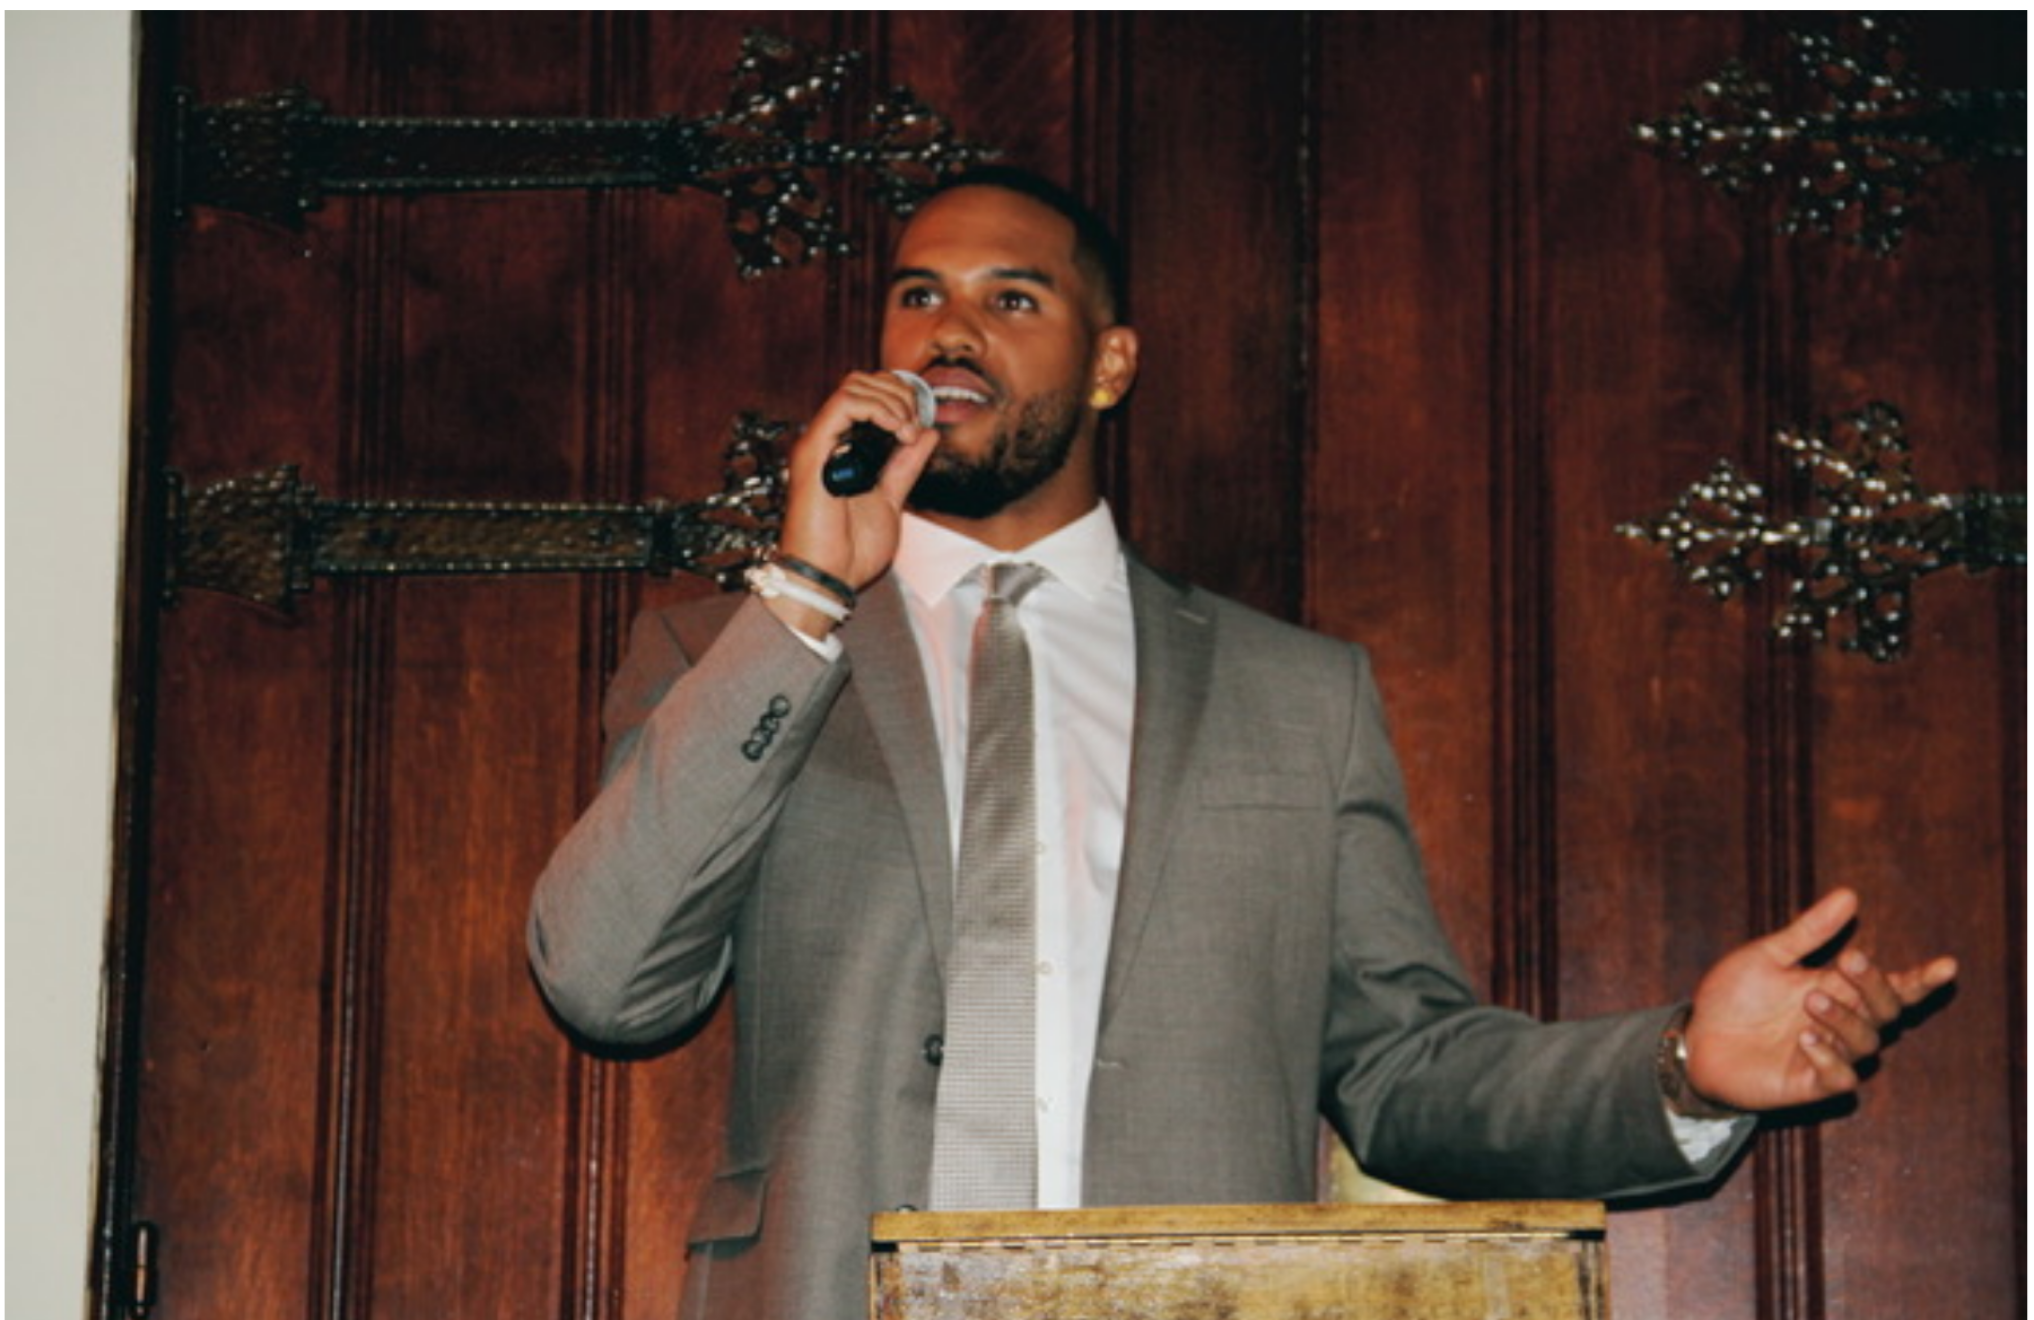 Anthony Barr at Wine Tasting Fundraiser